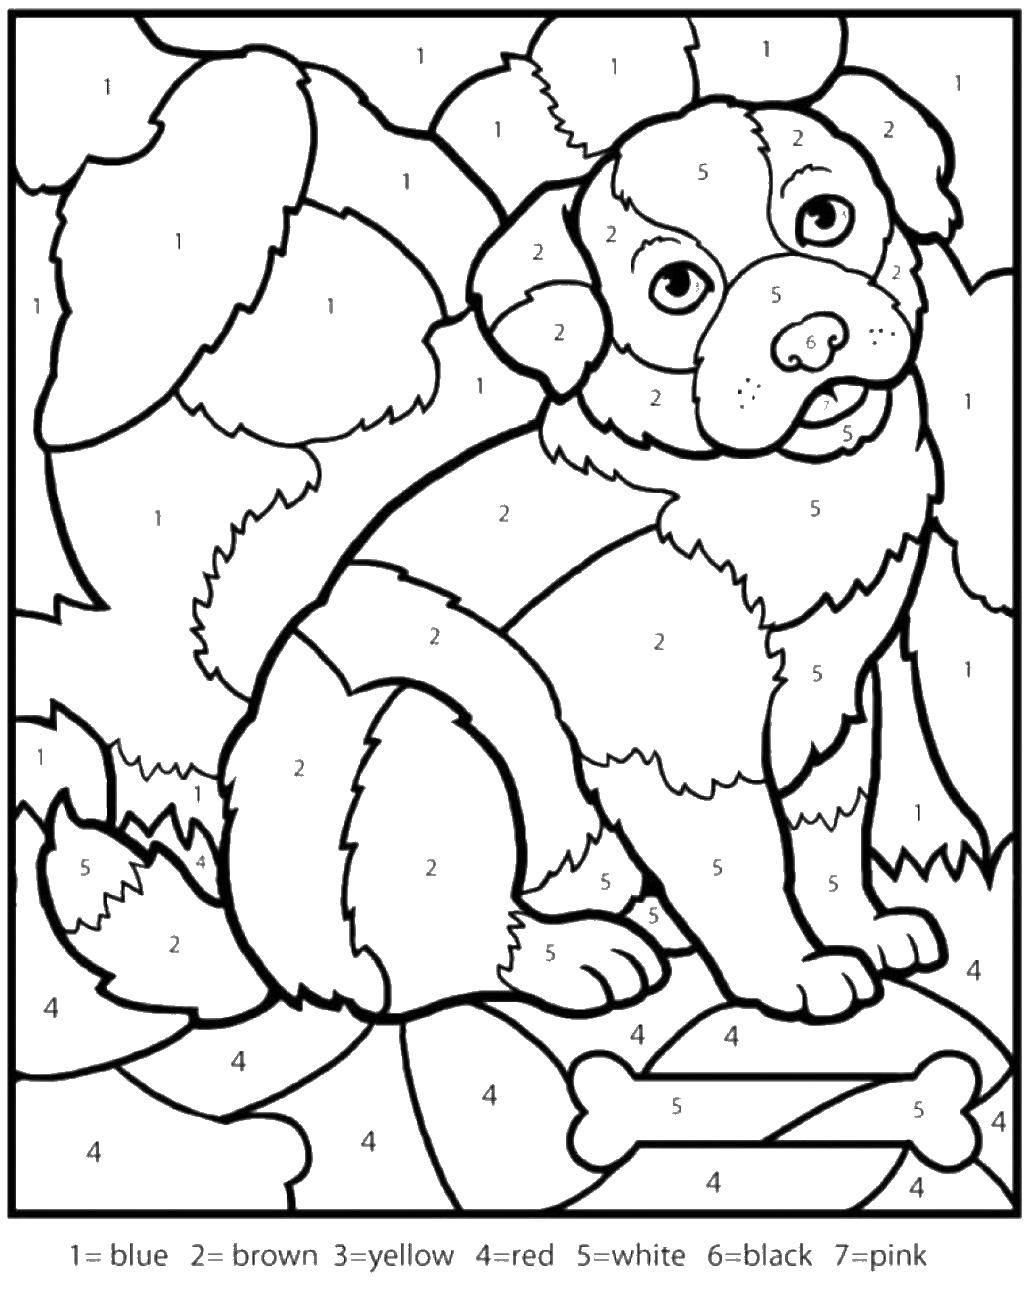 Coloring sheet coloring by numbers Download ,Transport, car,.  Print